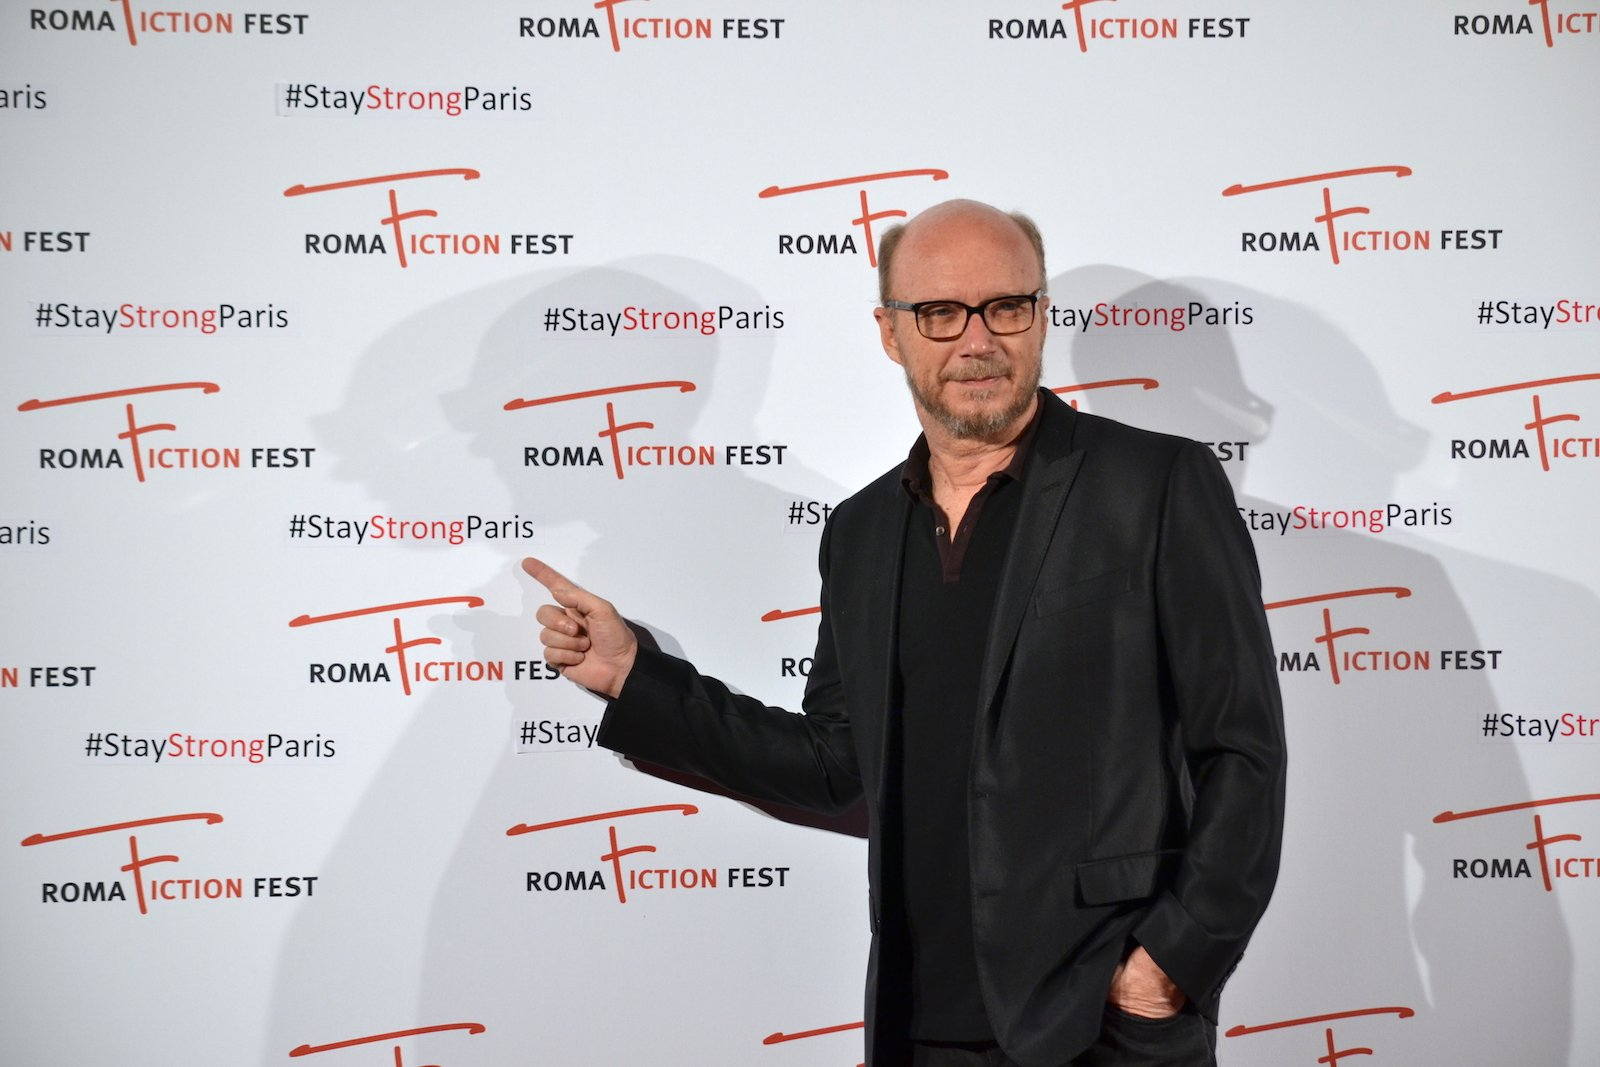 Roma Fiction Fest 2015: Paul Haggis durante il photocall precedente la masterclass